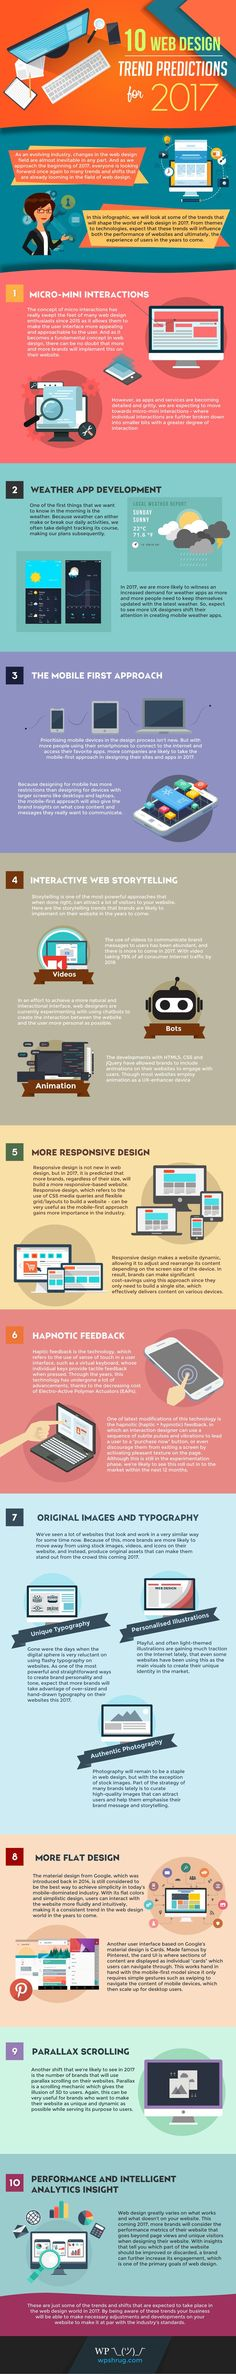 [Infographic] -10 Web Design Trend Predictions for 2017 - Looking to build a website or stay up to date on web design practices? Here�s an infographic on 10 Web Design Trends for 2017.